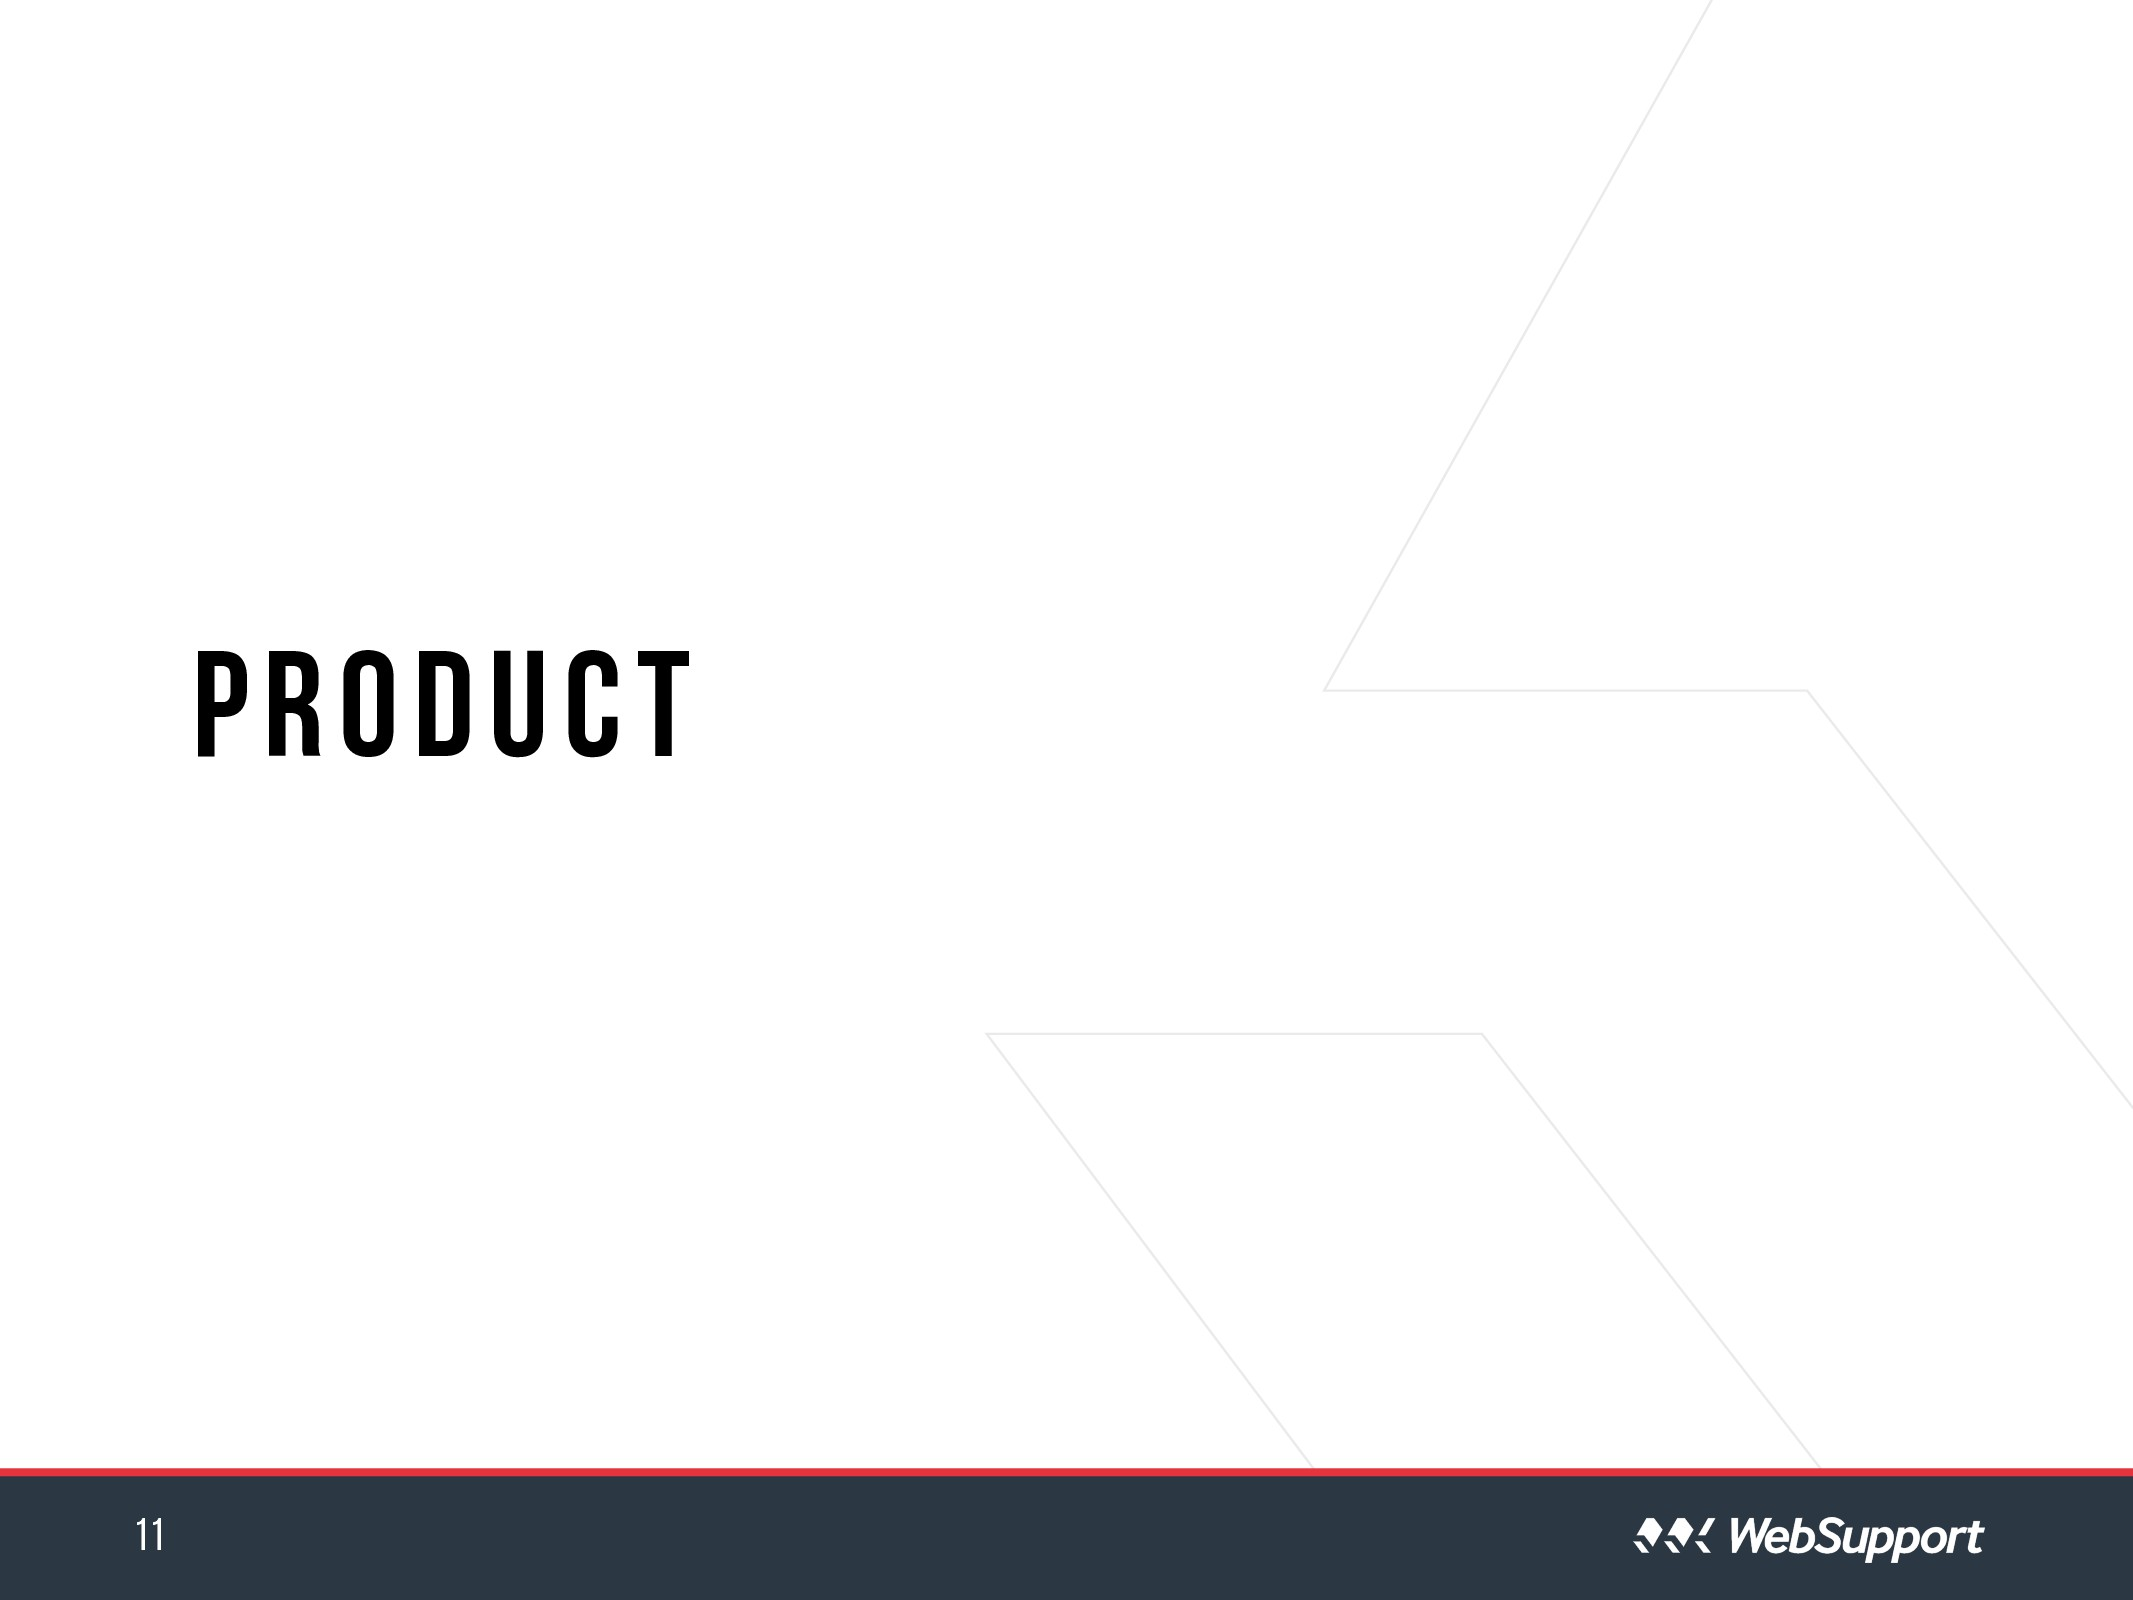 product 11